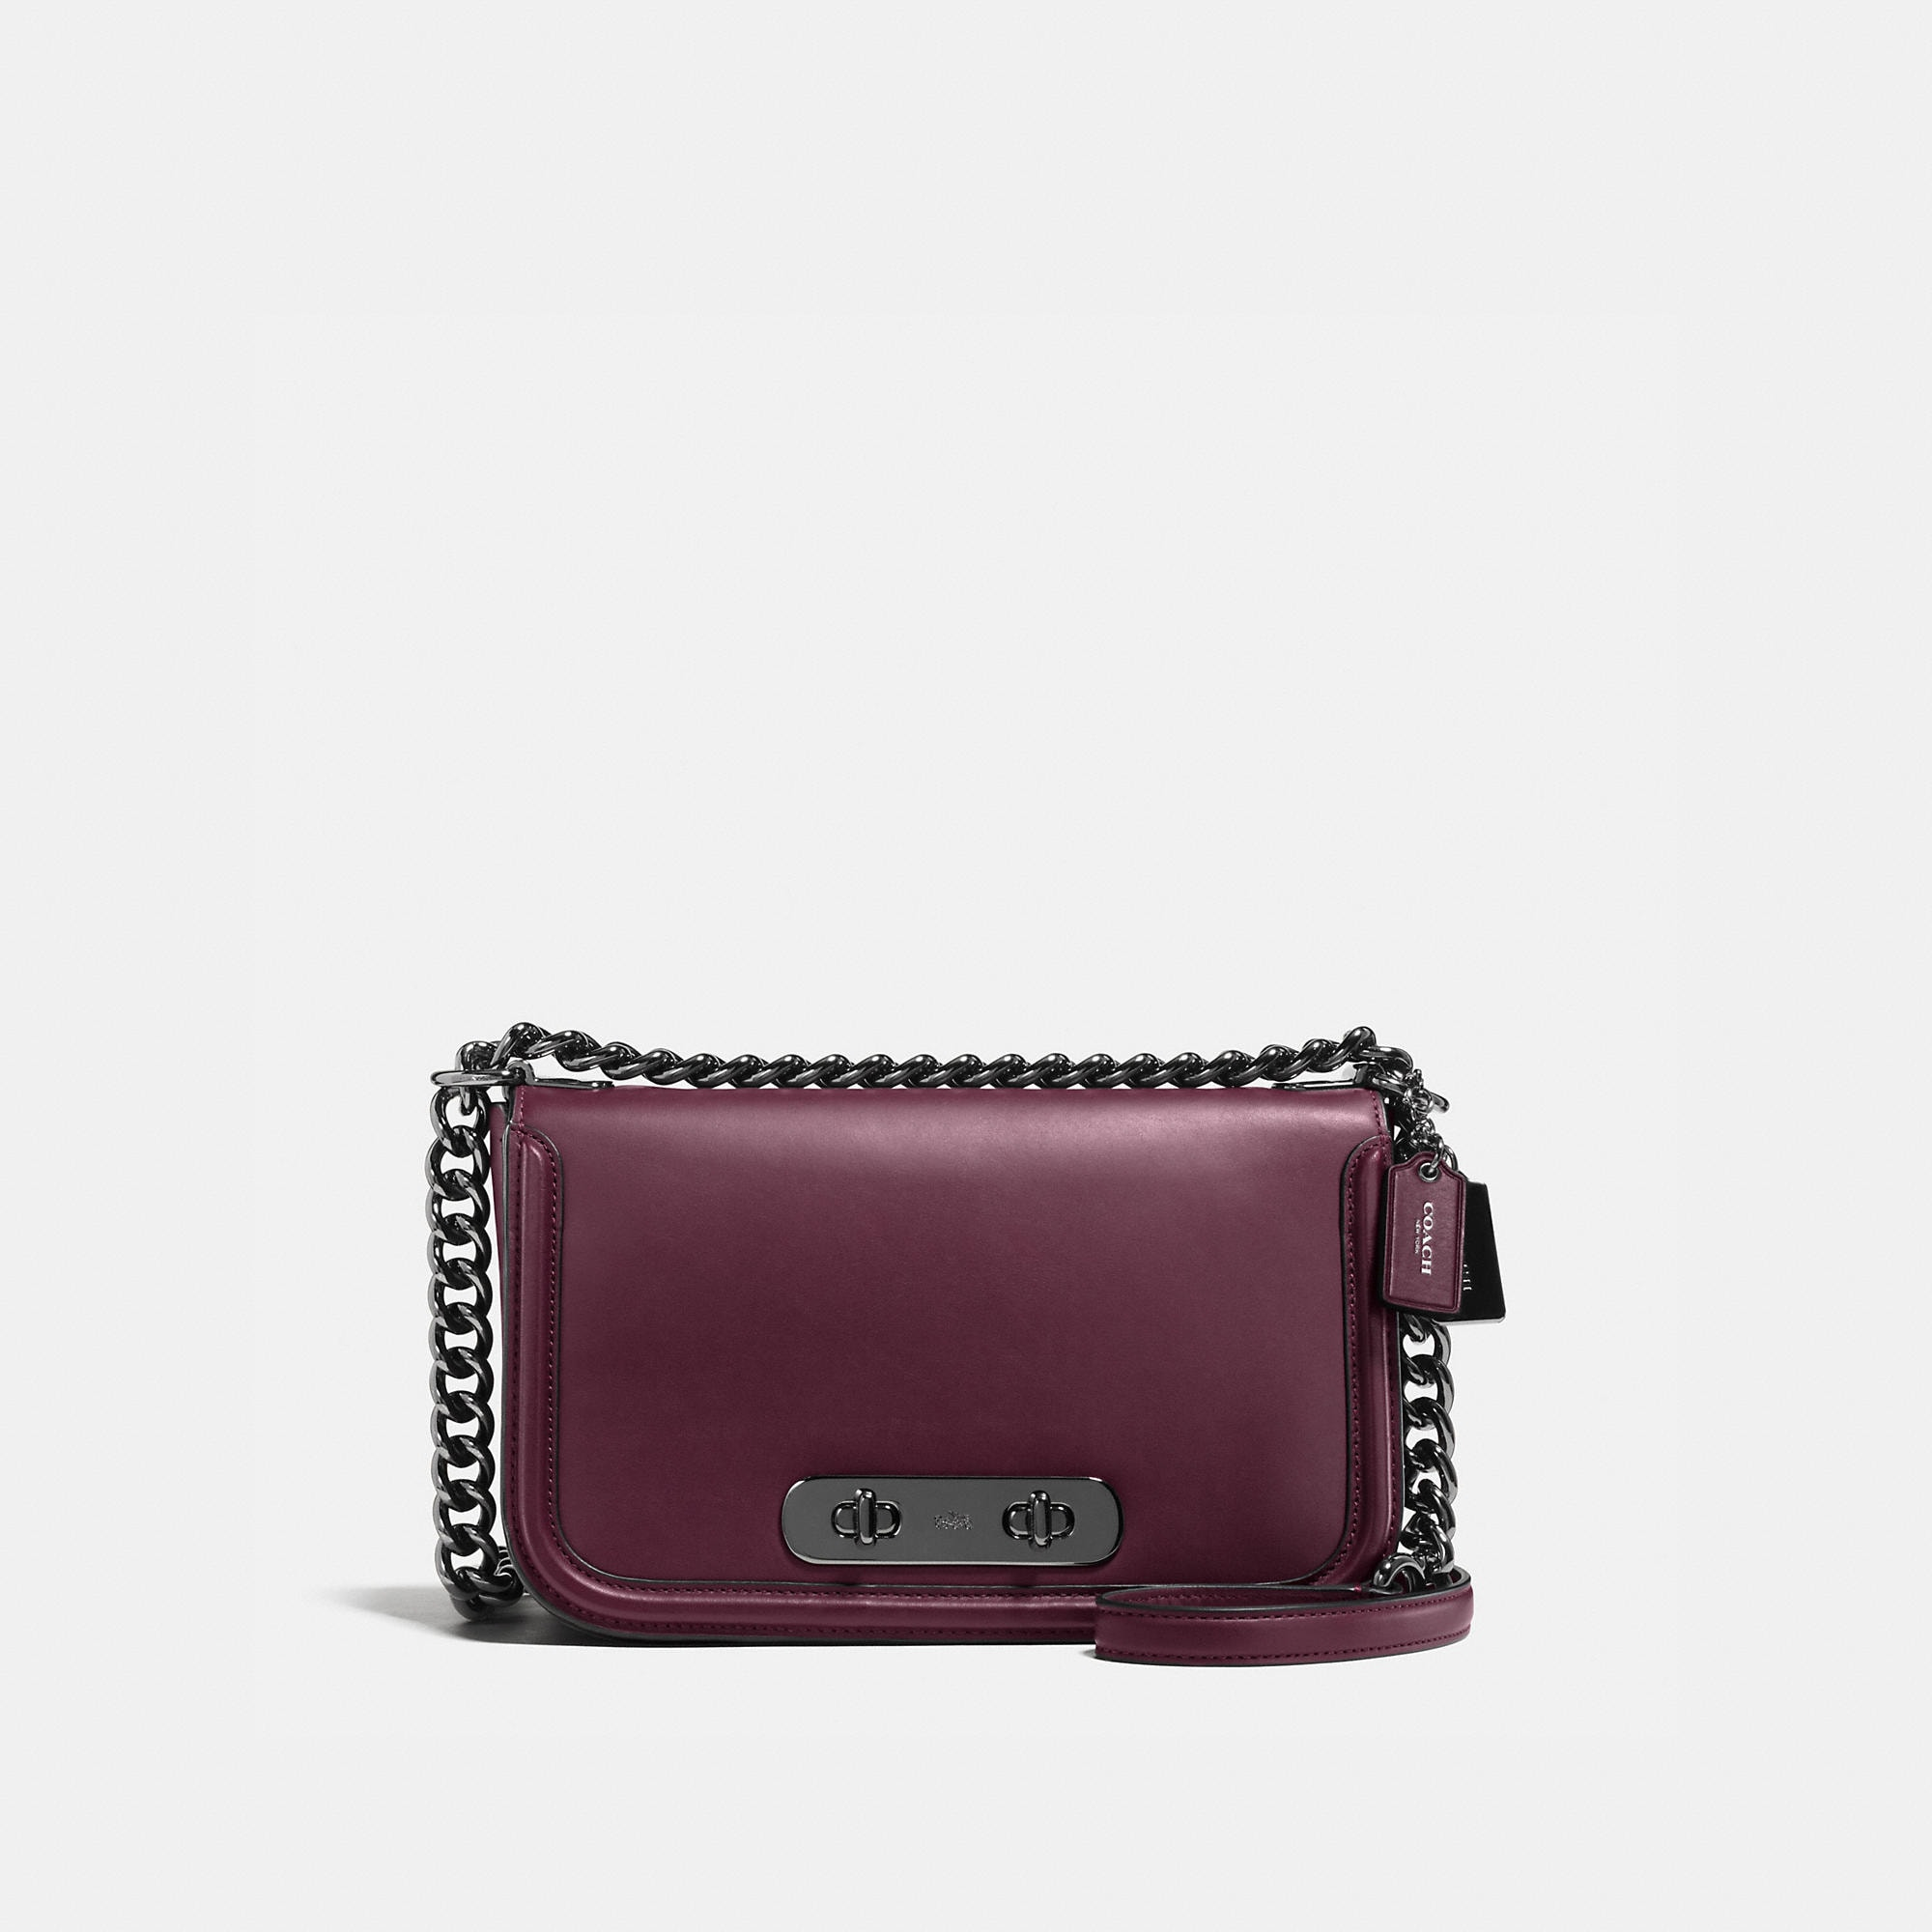 Coach Swagger Shoulder Bag In Glovetanned Leather